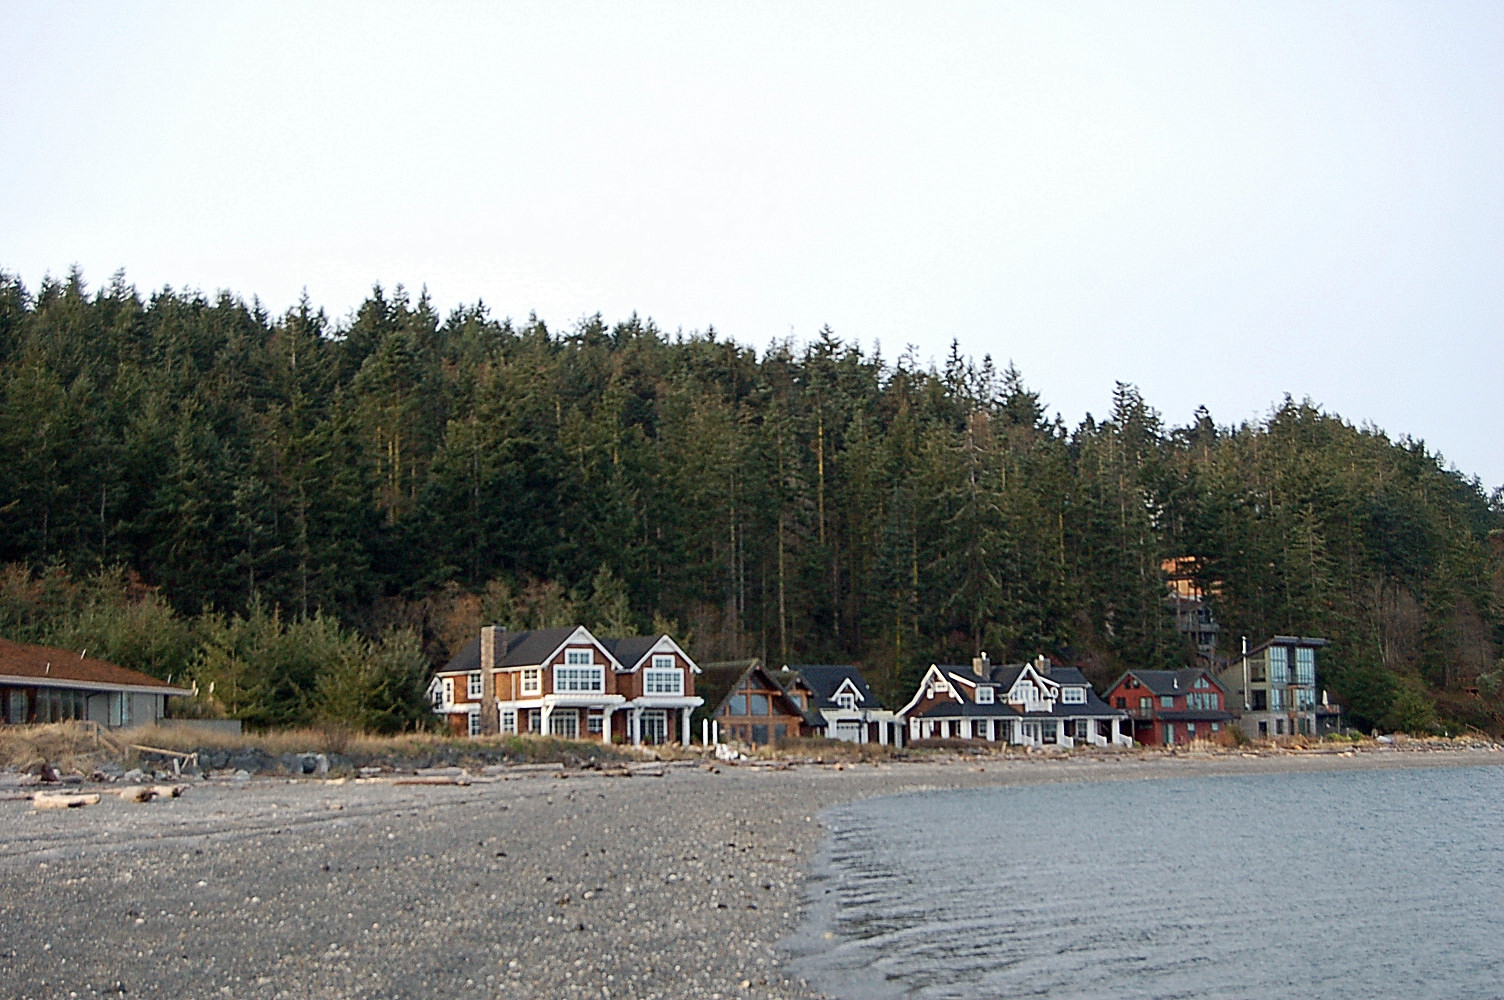 Sculpture Forest as seen from Long Point in Coupeville